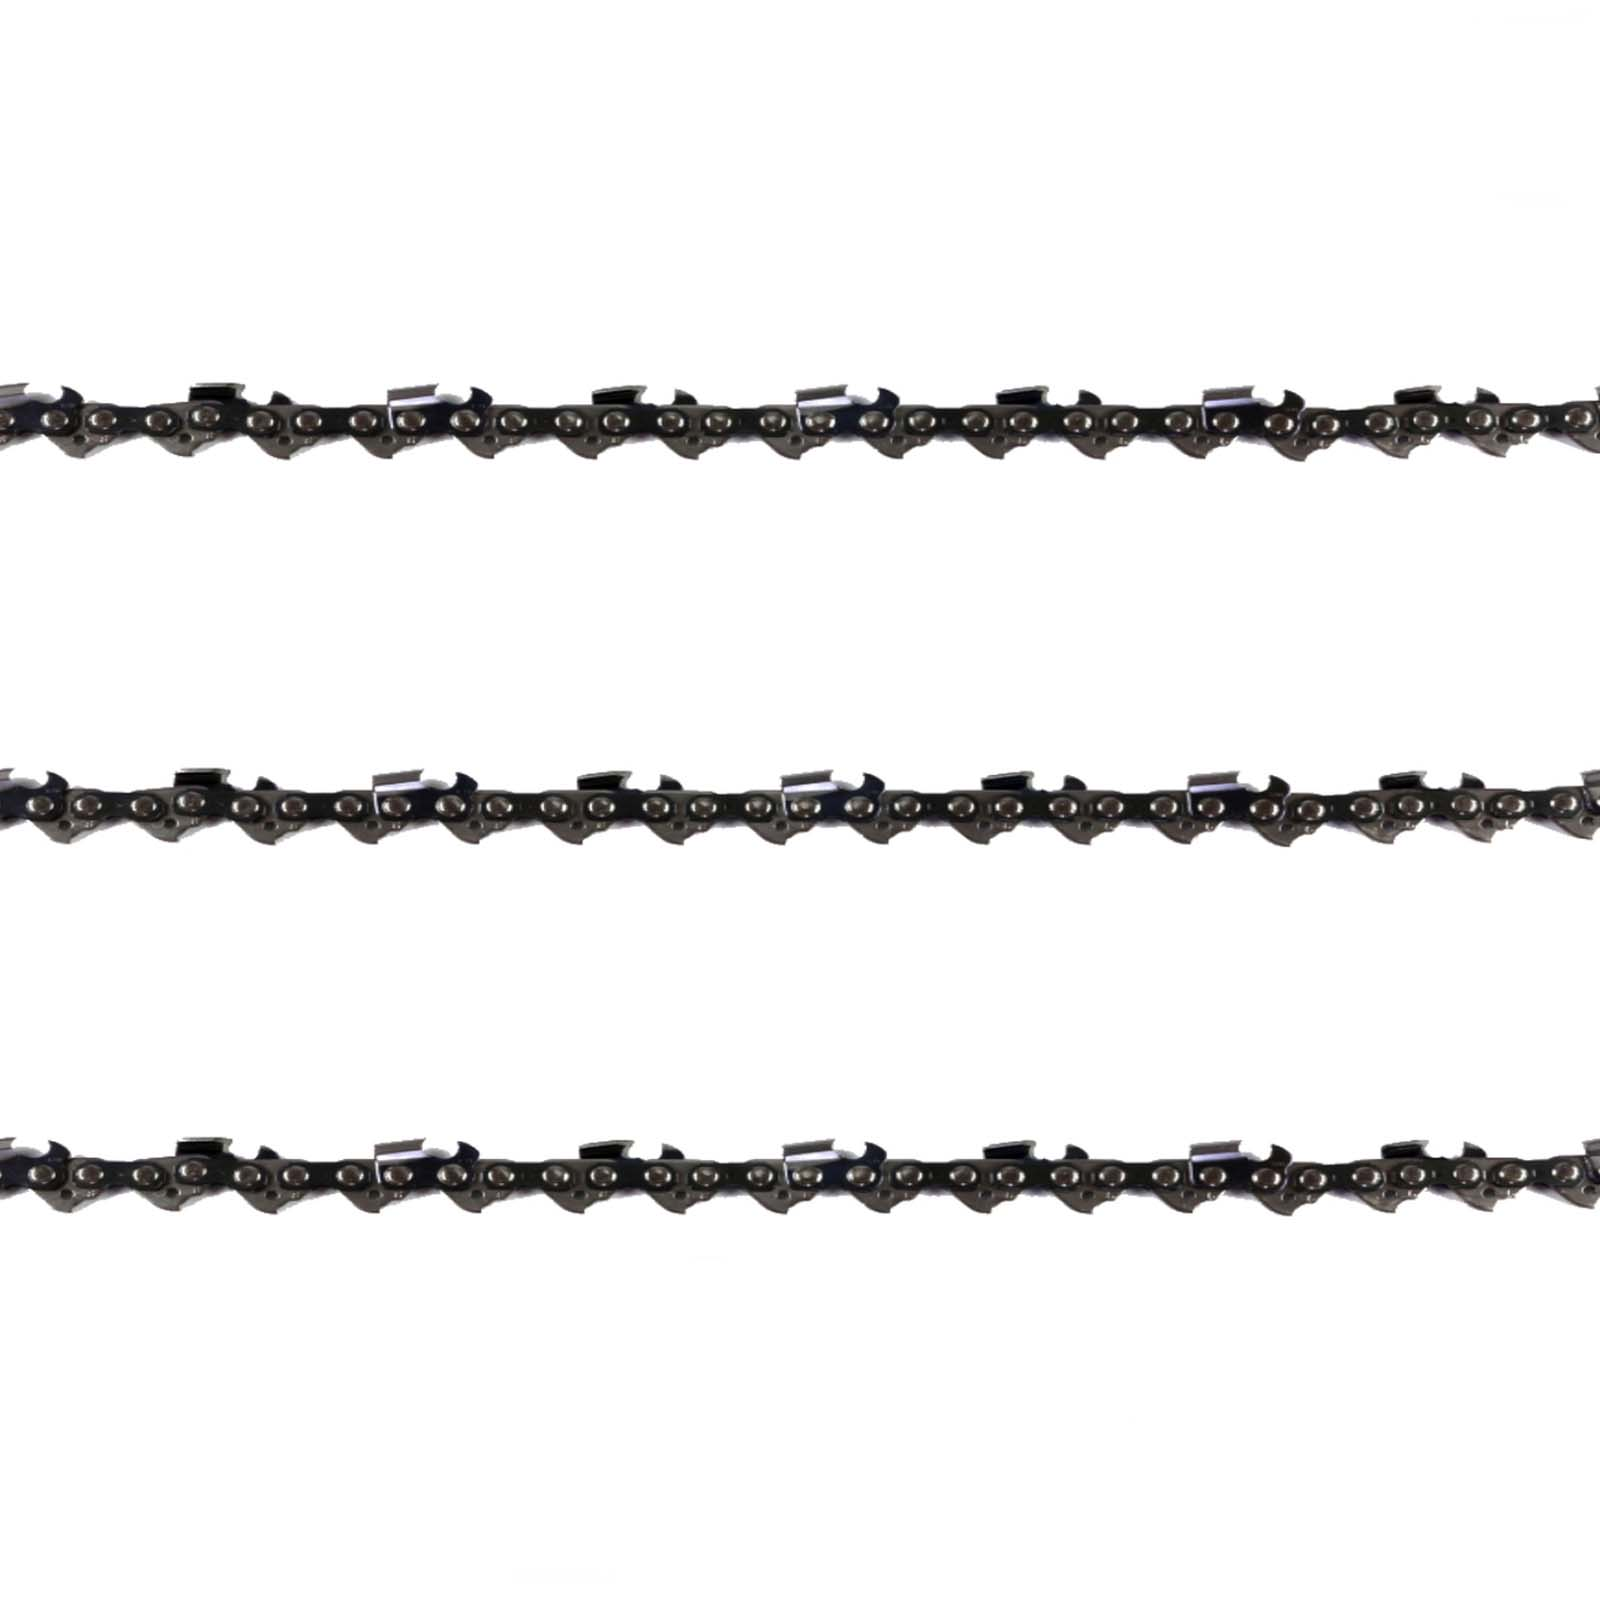 "3x Chainsaw Chains Full Chisel 3/8 063 60DL for Stihl 16"" Bar 034 038 066 MS660"